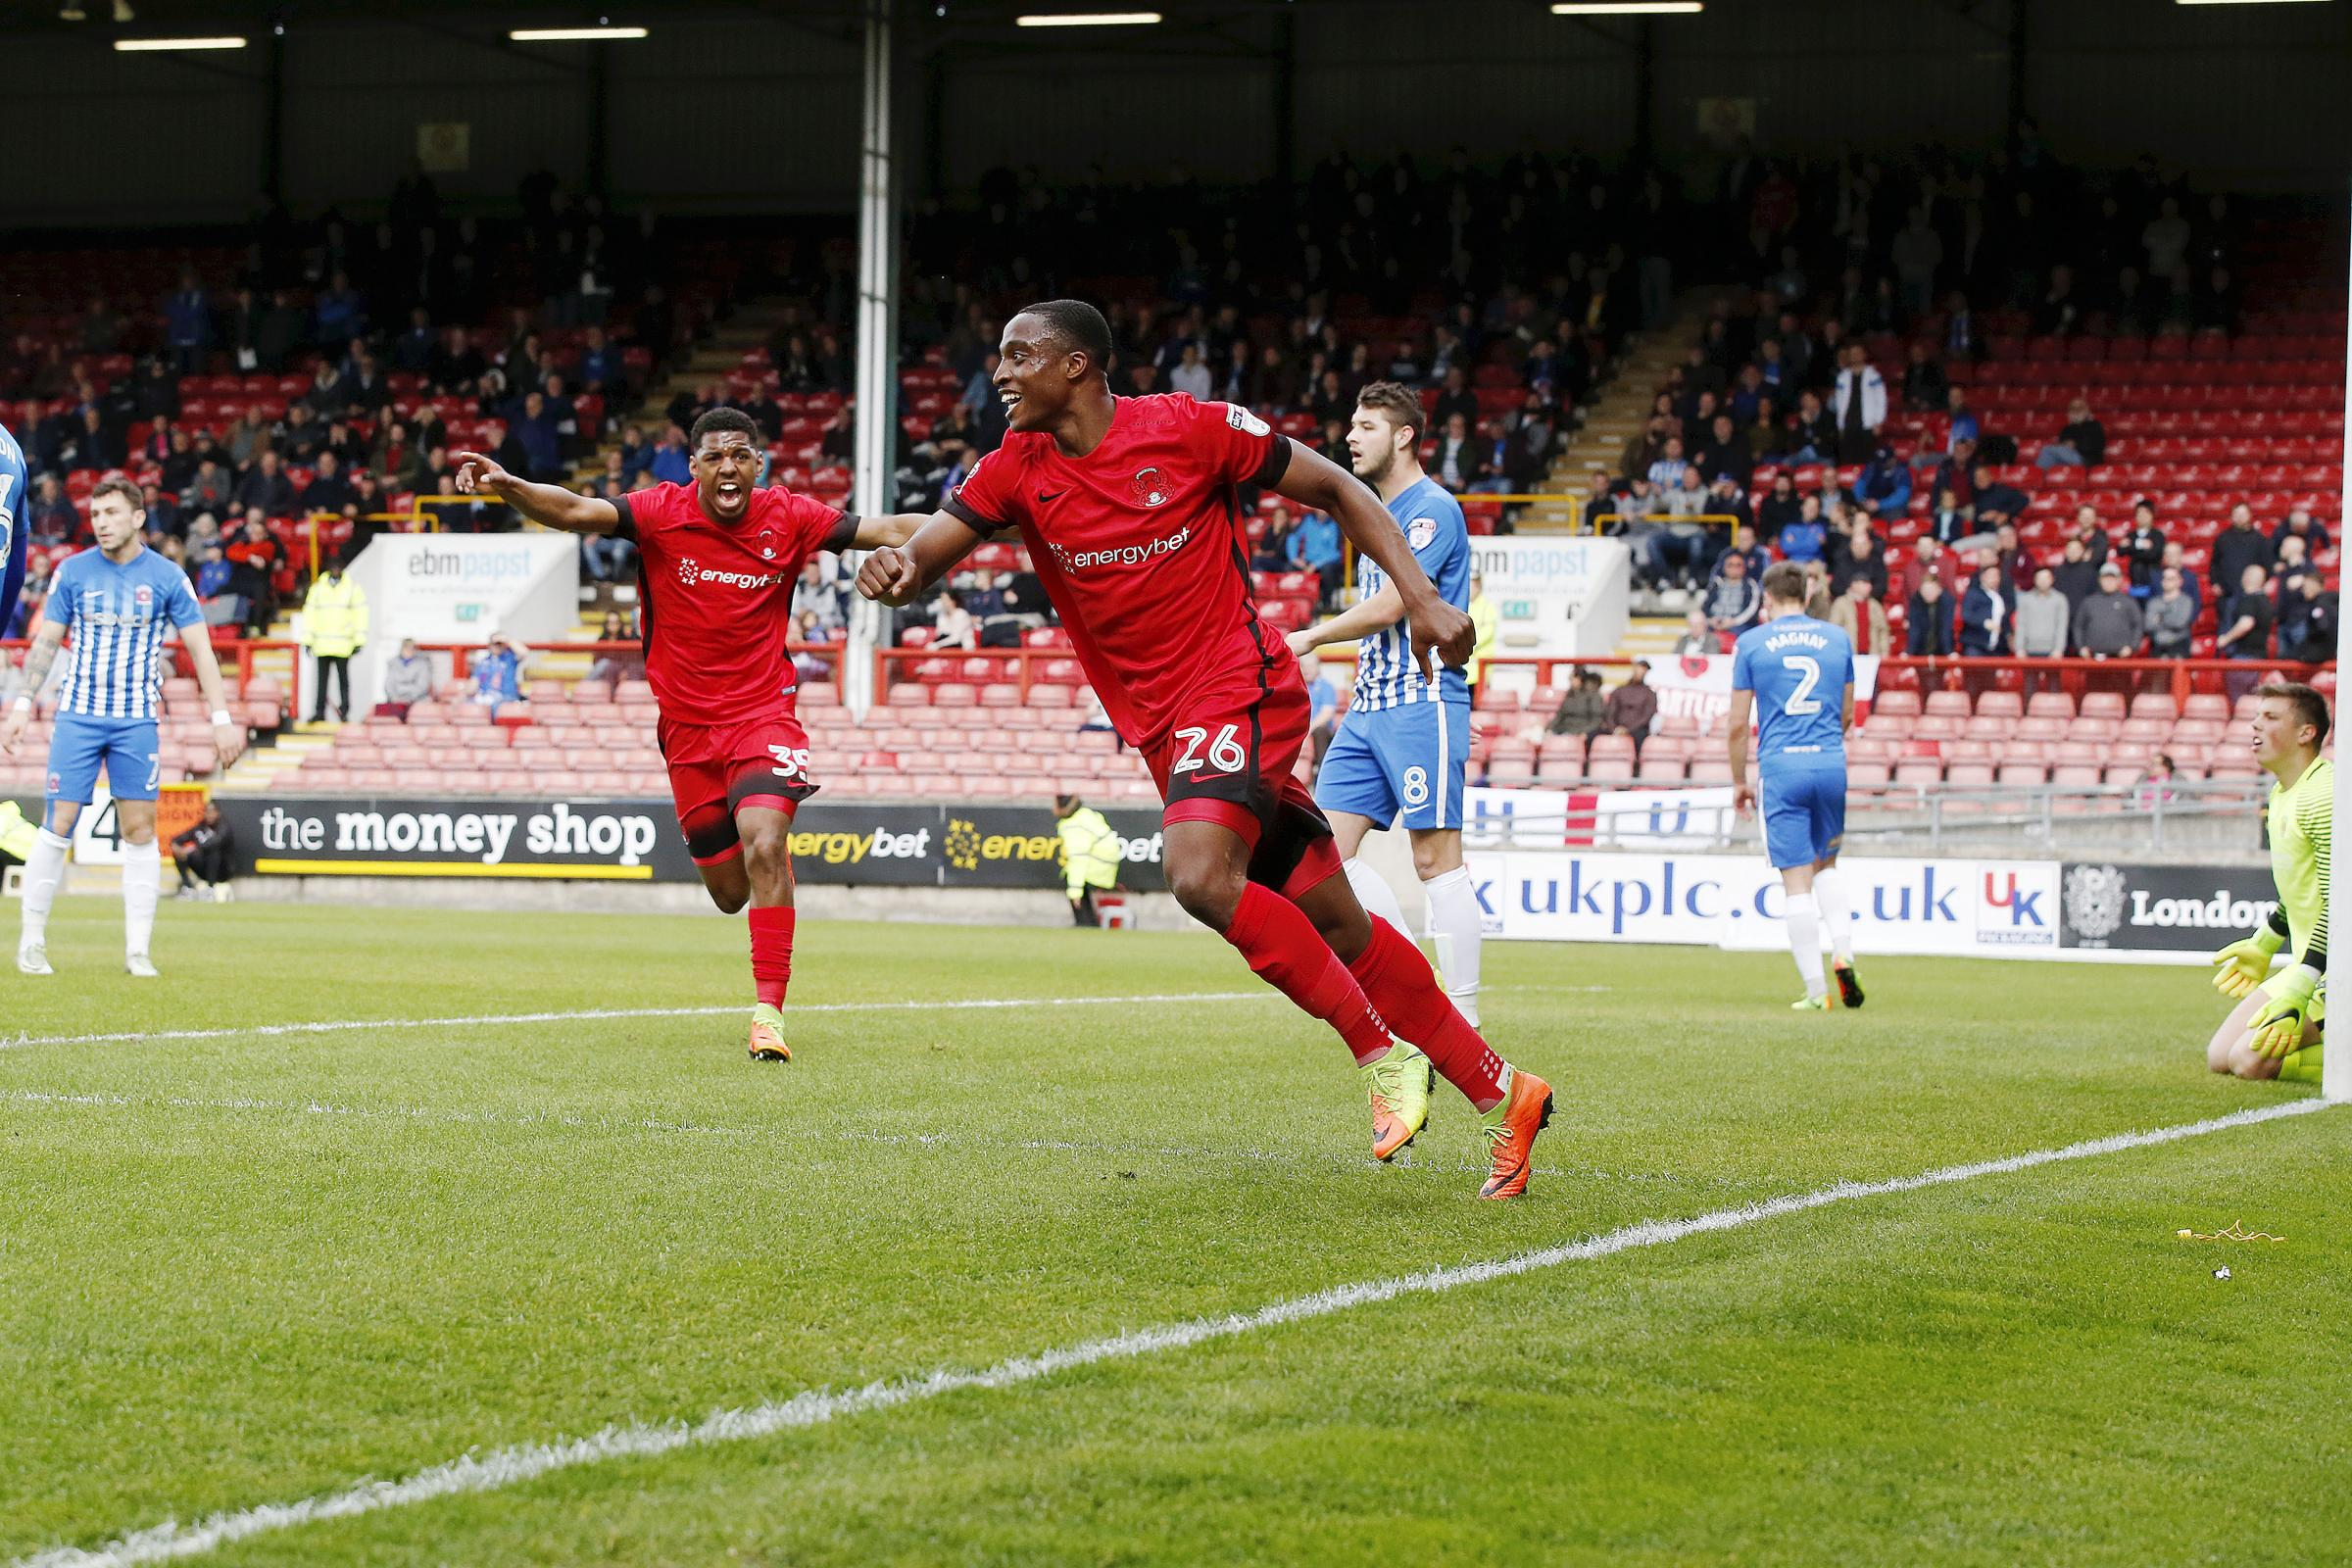 PROSPECT: Ex-Leyton Orient striker Victor Adeboyajo scoring his first senior goal against Hartlepool United. Picture by Simon O'Connor